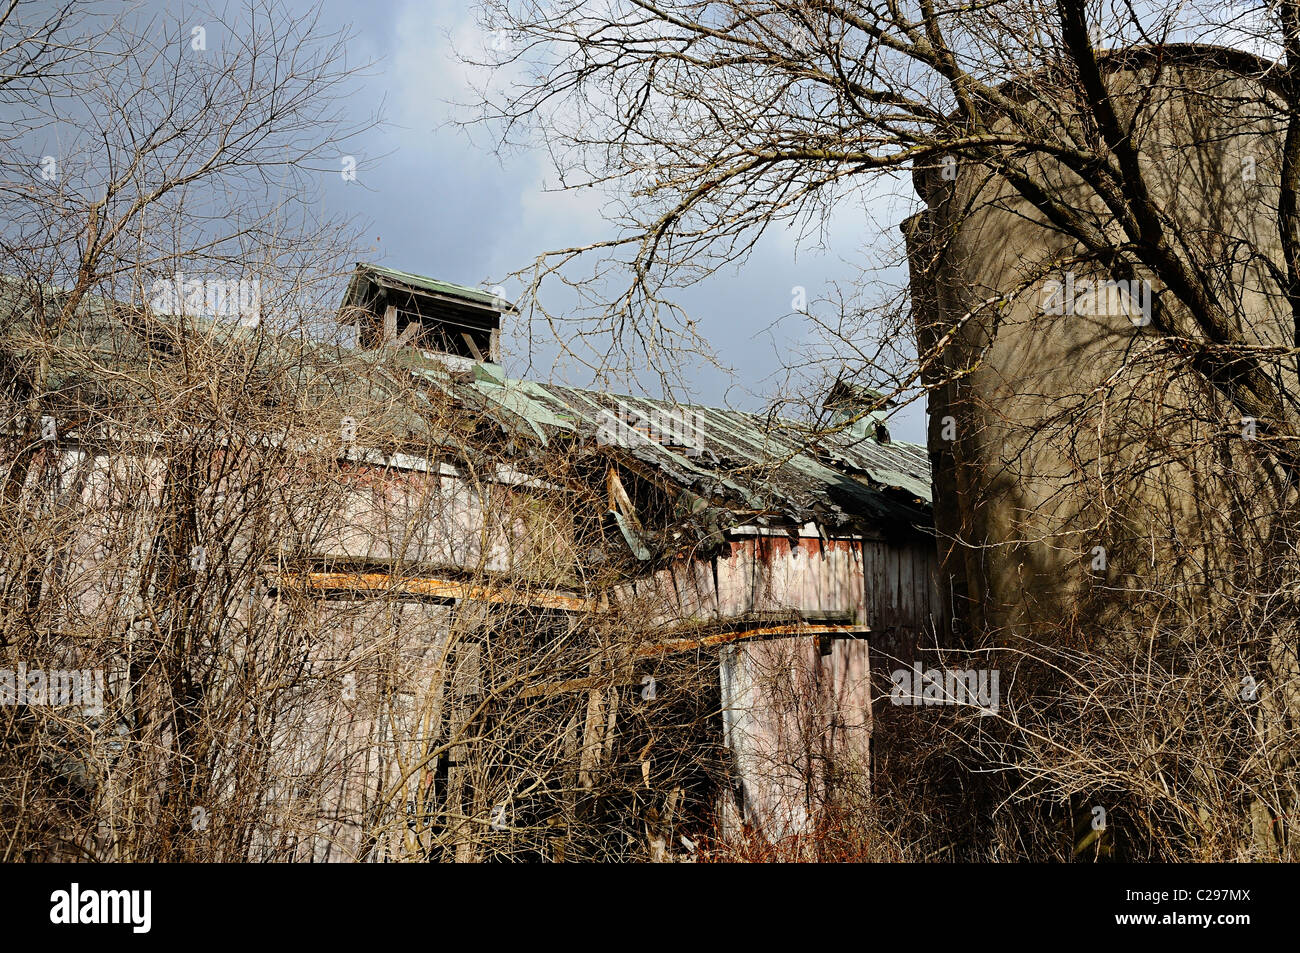 Overgrown decaying barn and silo in Illinois, USA. - Stock Image